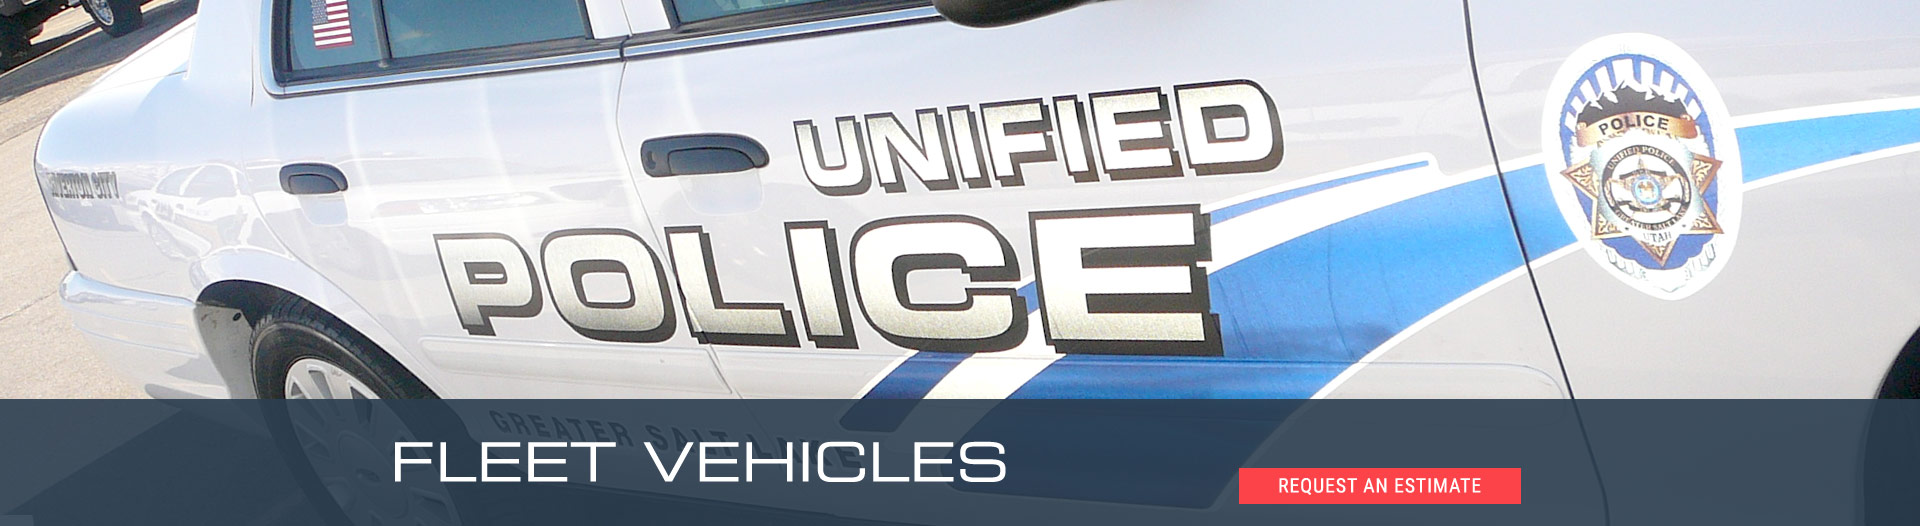 Unified Police Vehicle Wrap